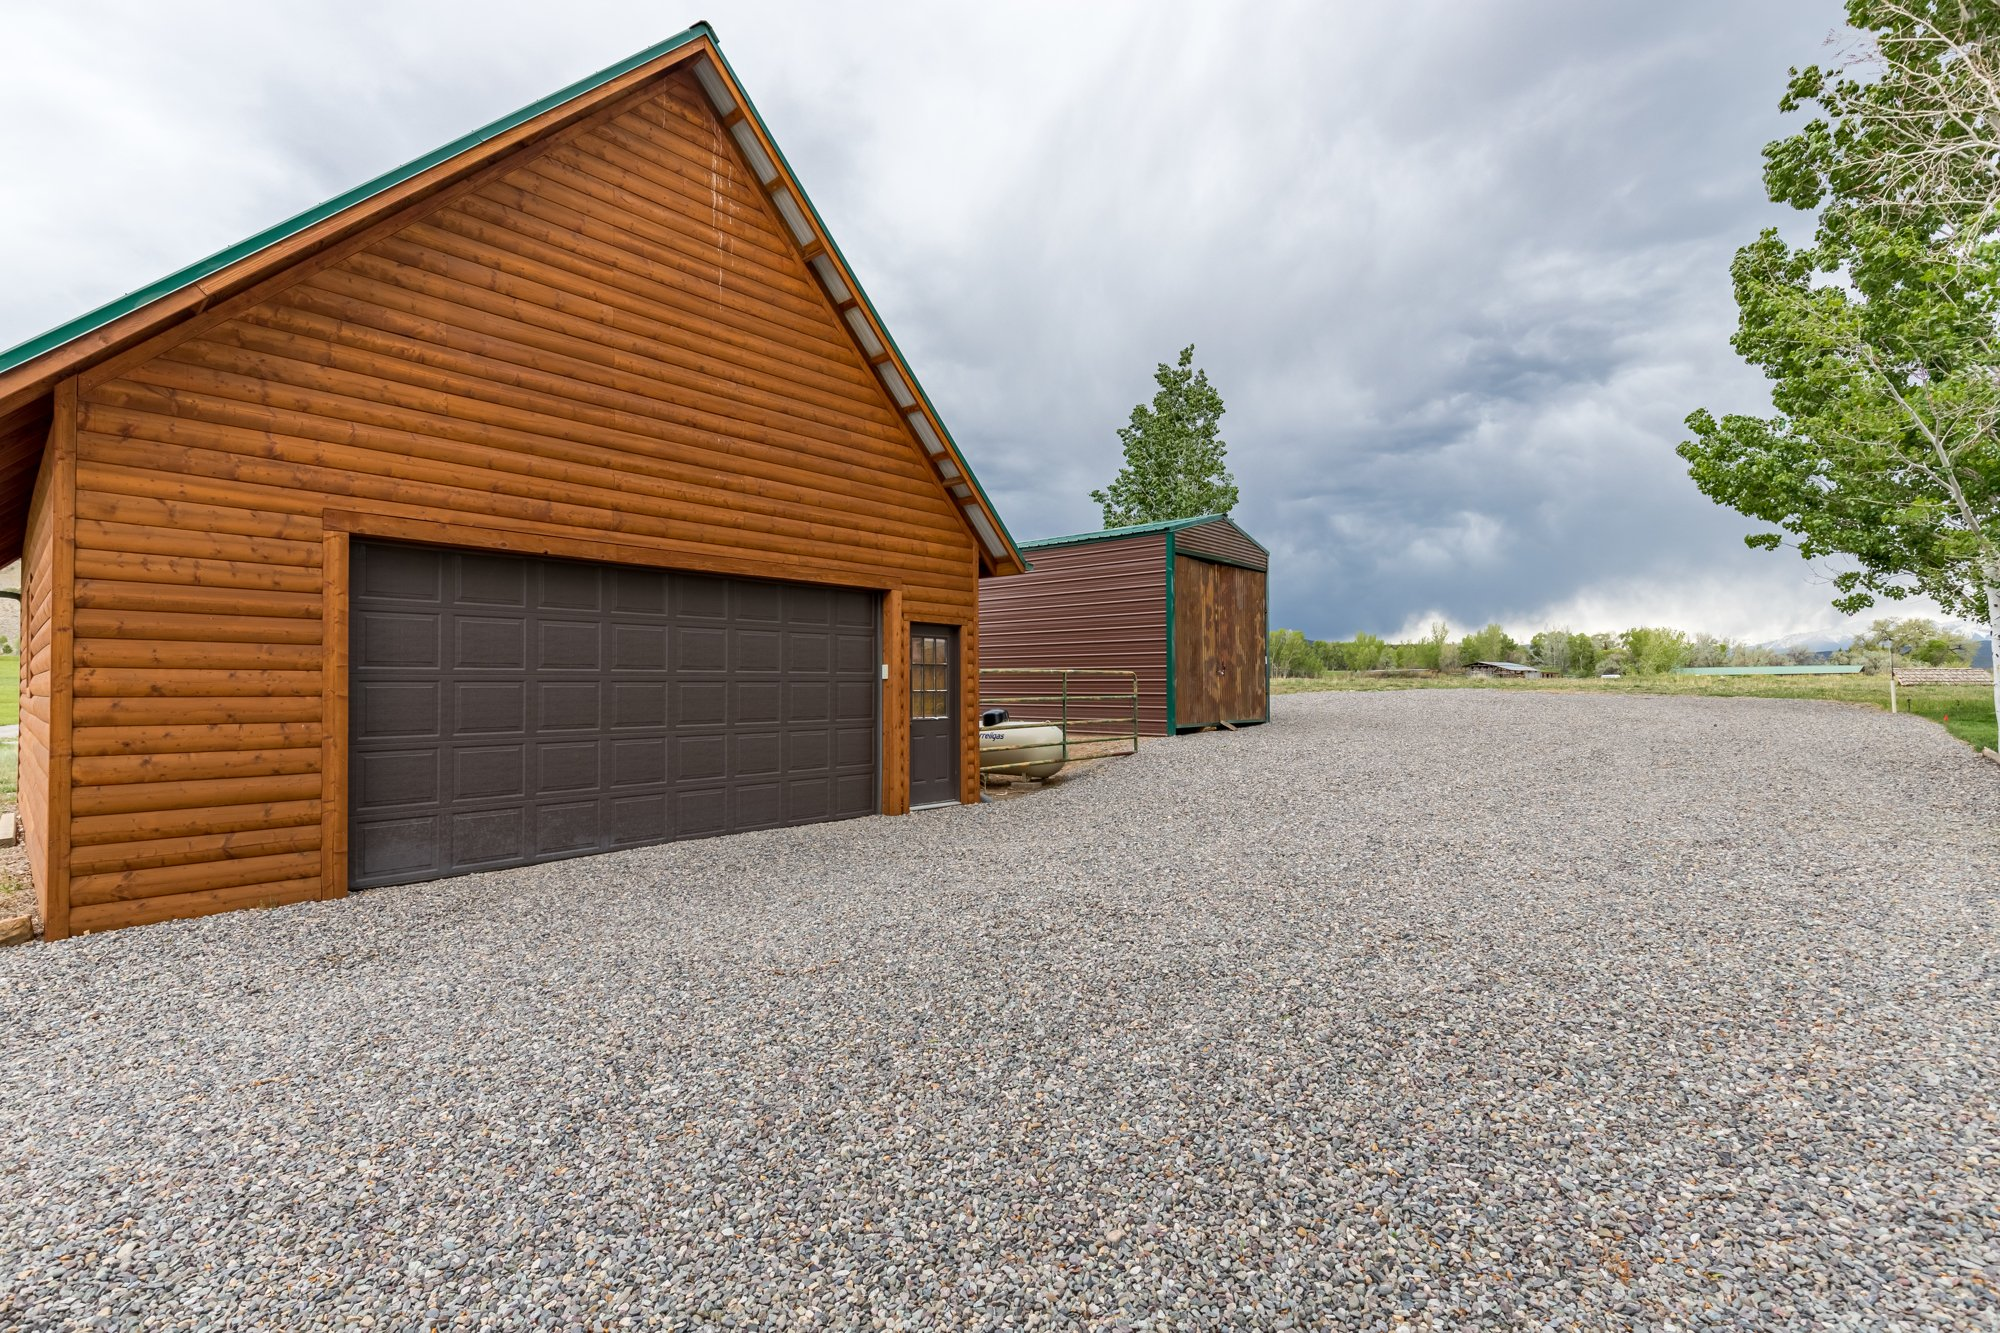 Detached Garage with Metal Workshop - 21770 Uncompahgre Rd Montrose, CO 81403 - Atha Team Country Real Estate